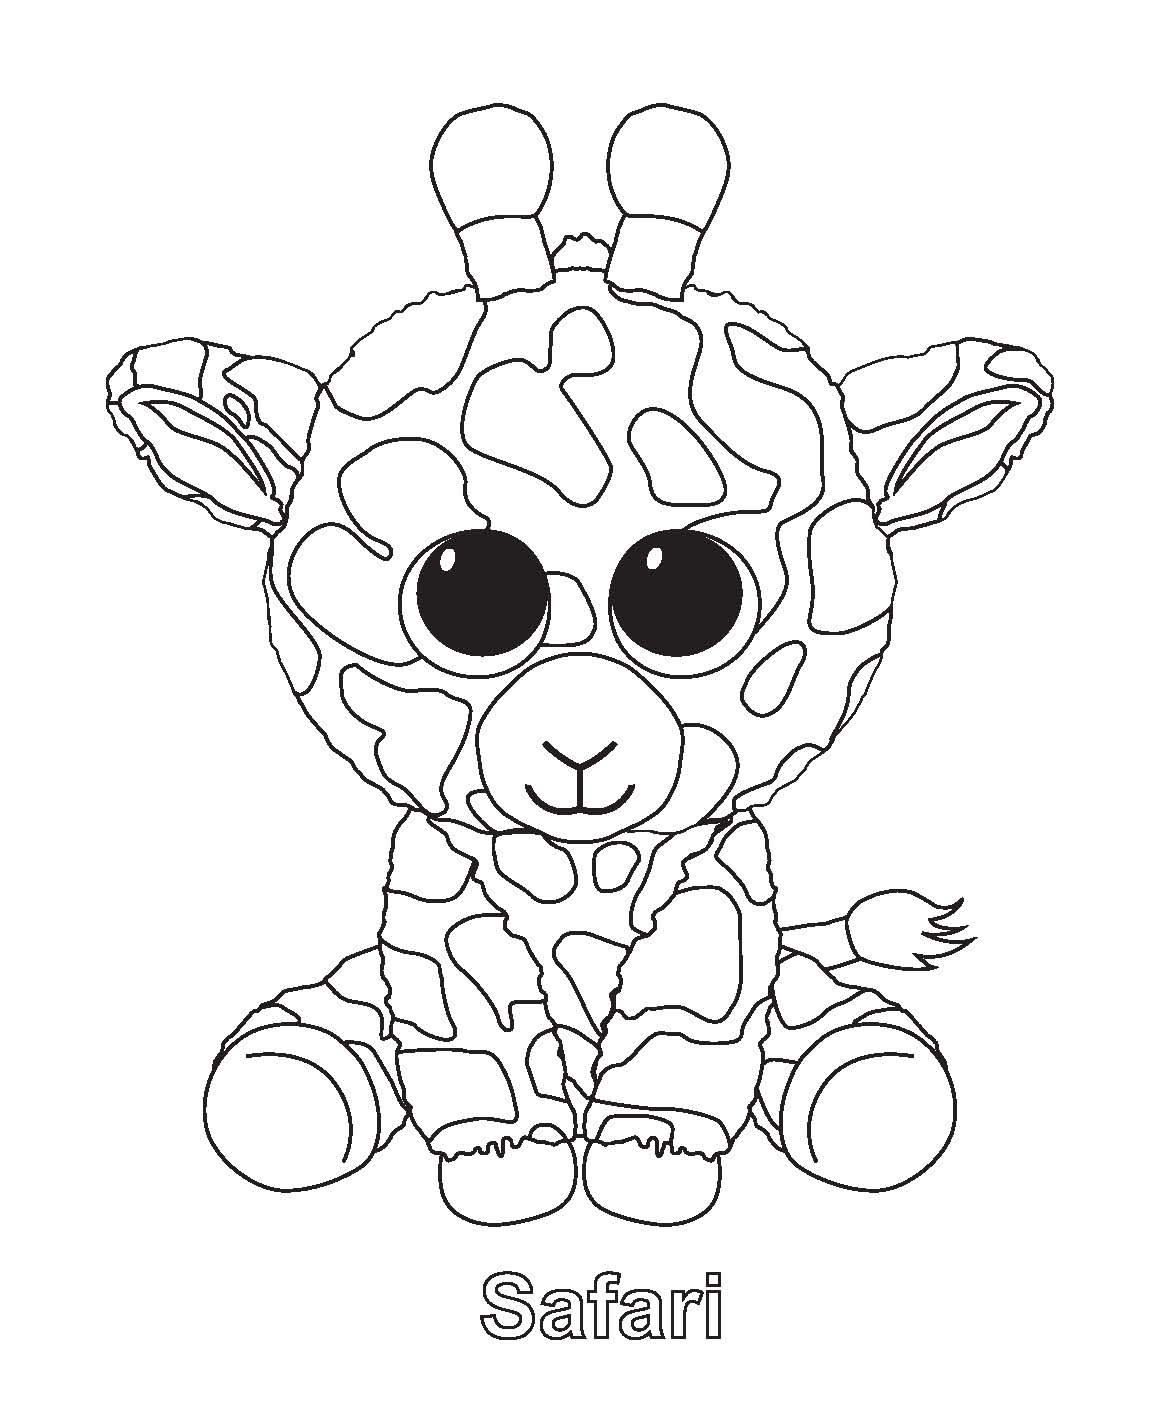 beanie baby coloring pages - photo#18